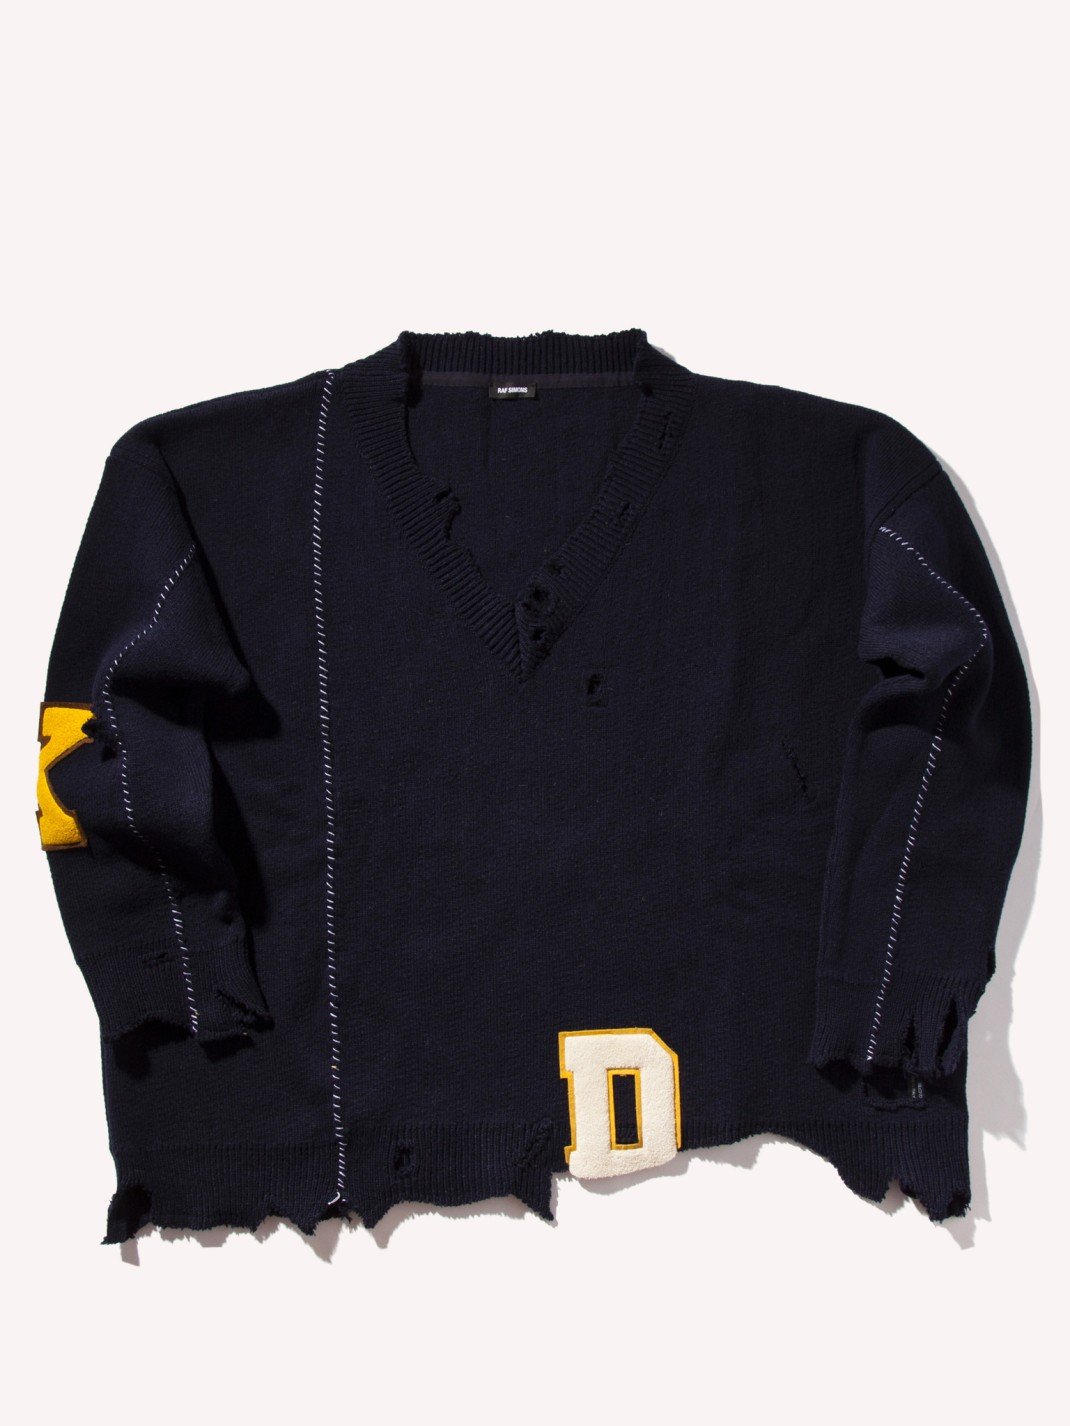 RAF_SIMONS_Oversized_Destroyed_V-Neck_Knit_Sweater_Dark_Navy